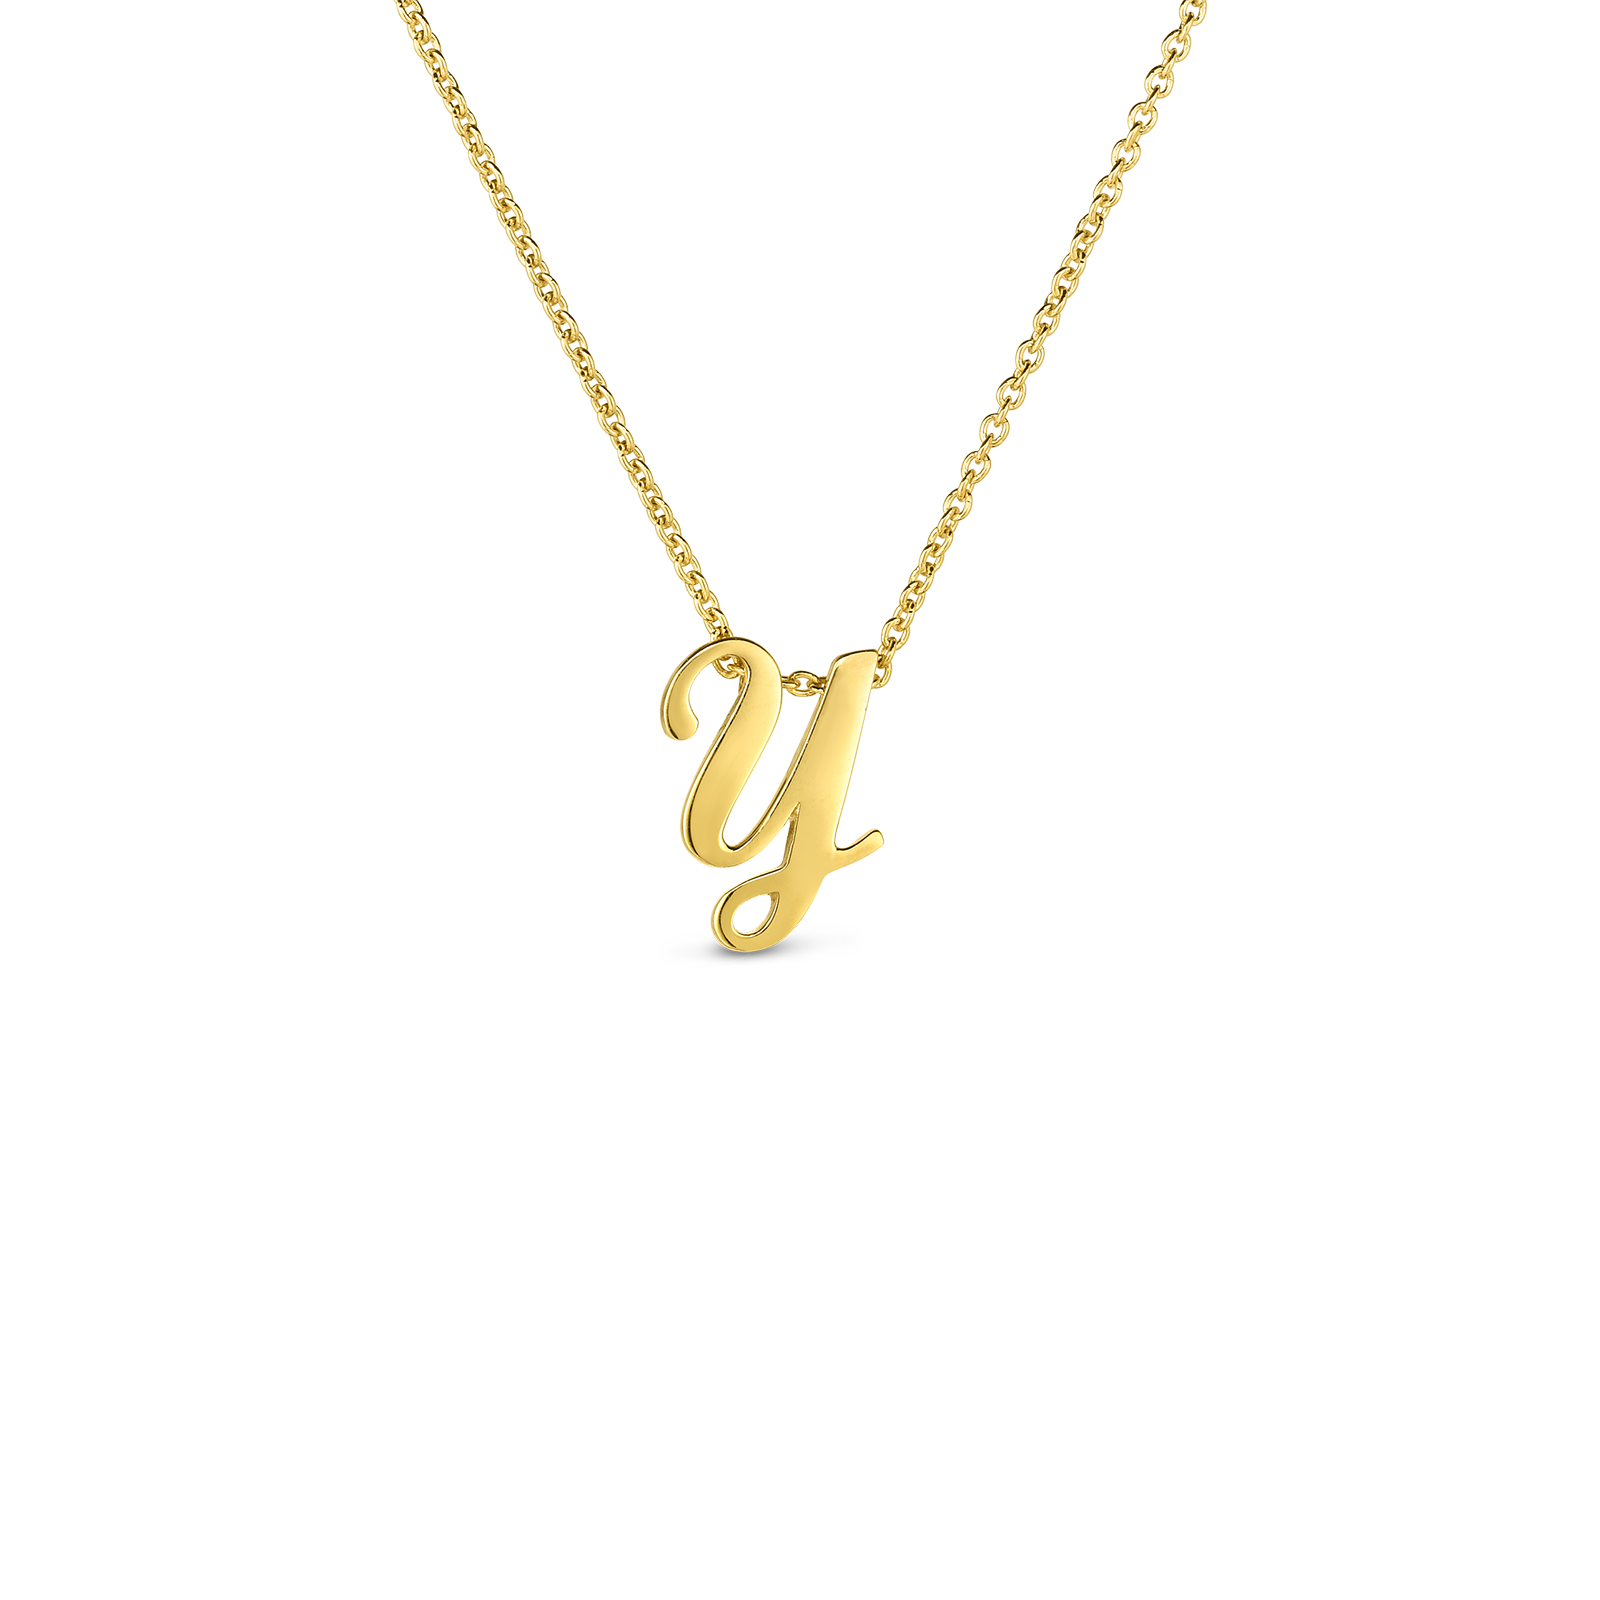 18k Small Script Initial 'Y' Pendant On Chain